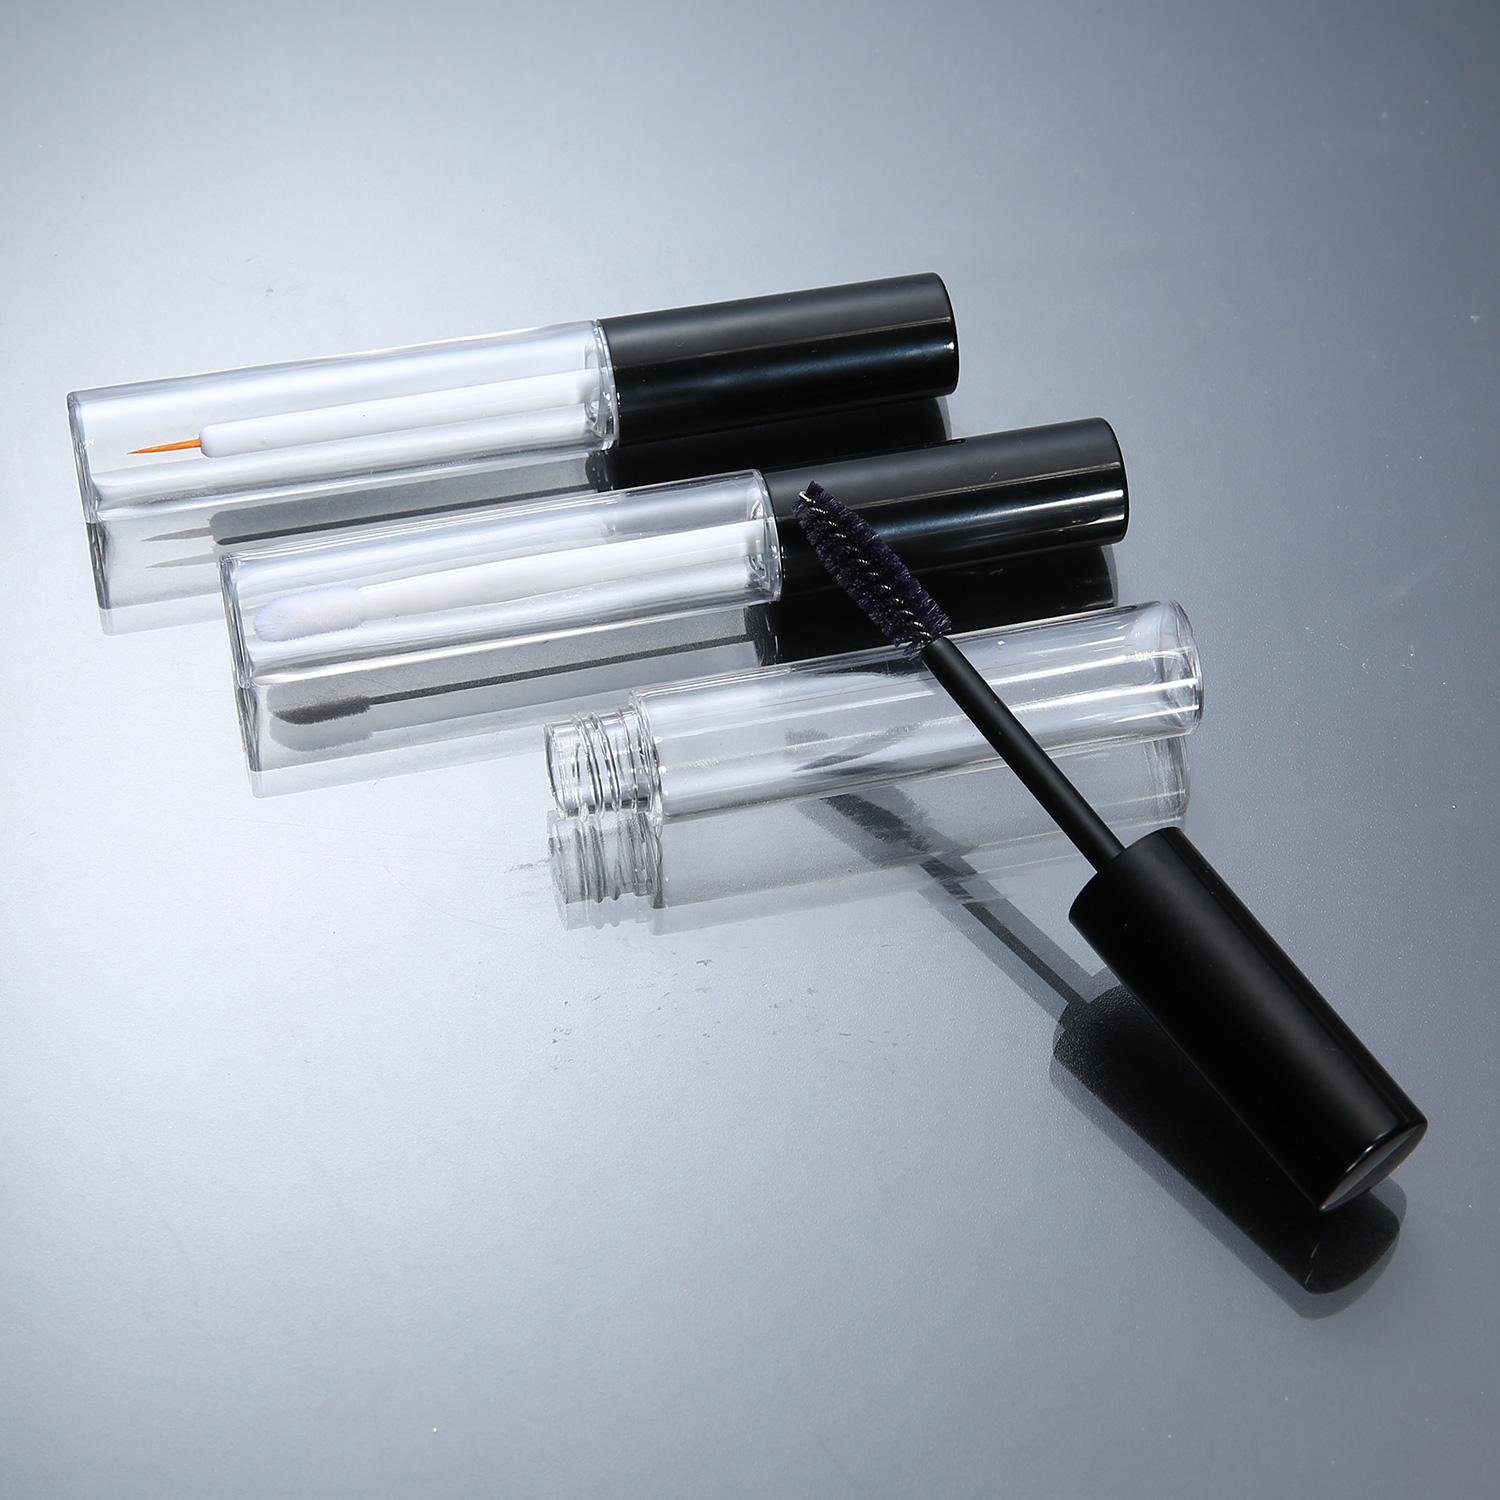 1807a131f0e1 10ml Empty Mascara Tube Eyeliner Bottle Lip Gloss Tubes Vials Containers  with Rubber Inserts and Funnels